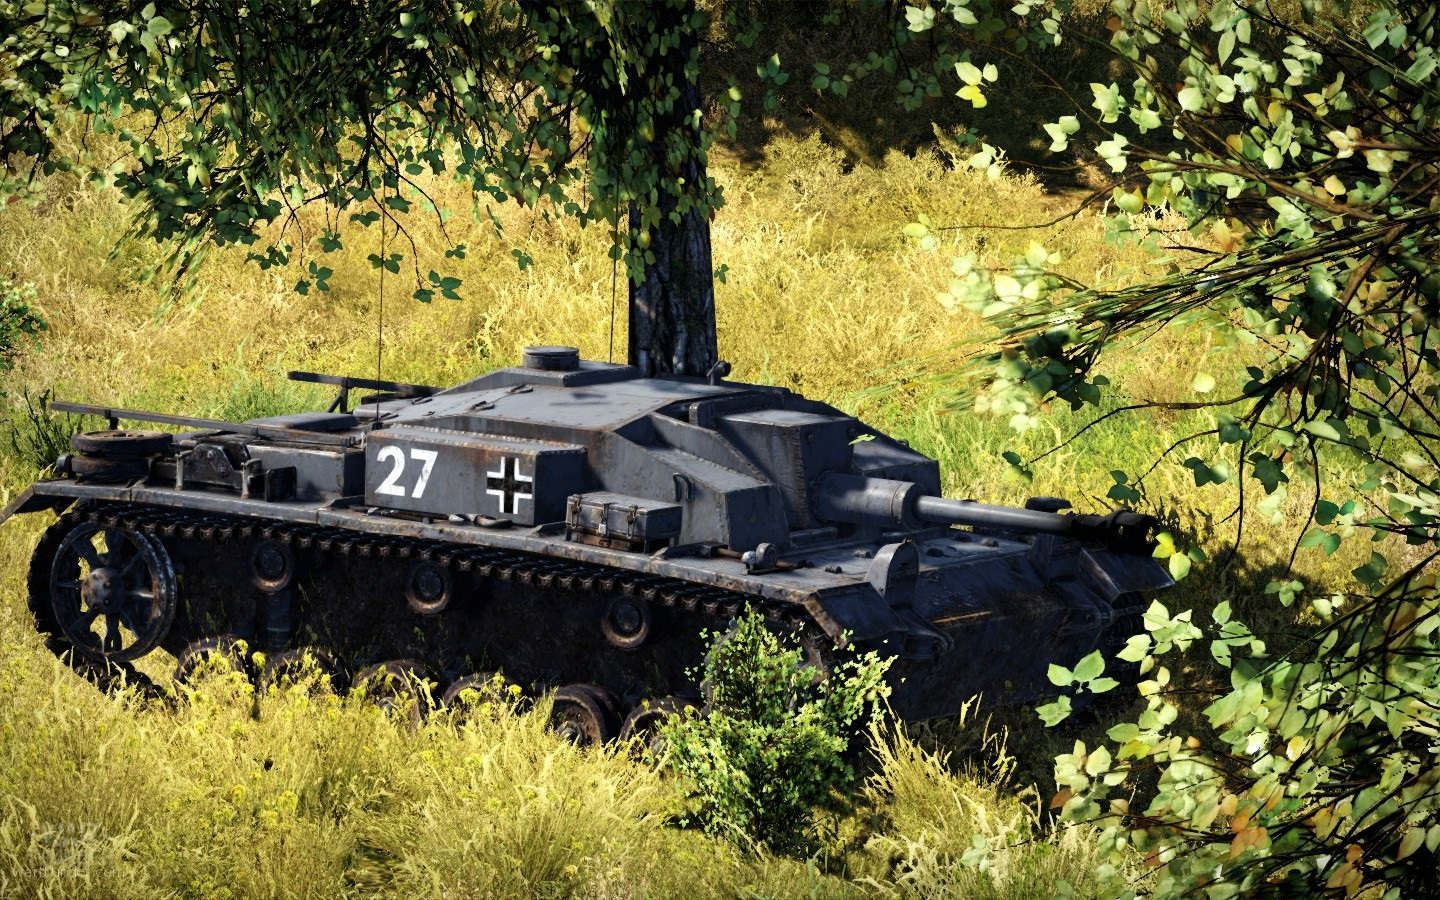 War Thunder Ground Forces - Seite 3 Stug-f-3m1s1a